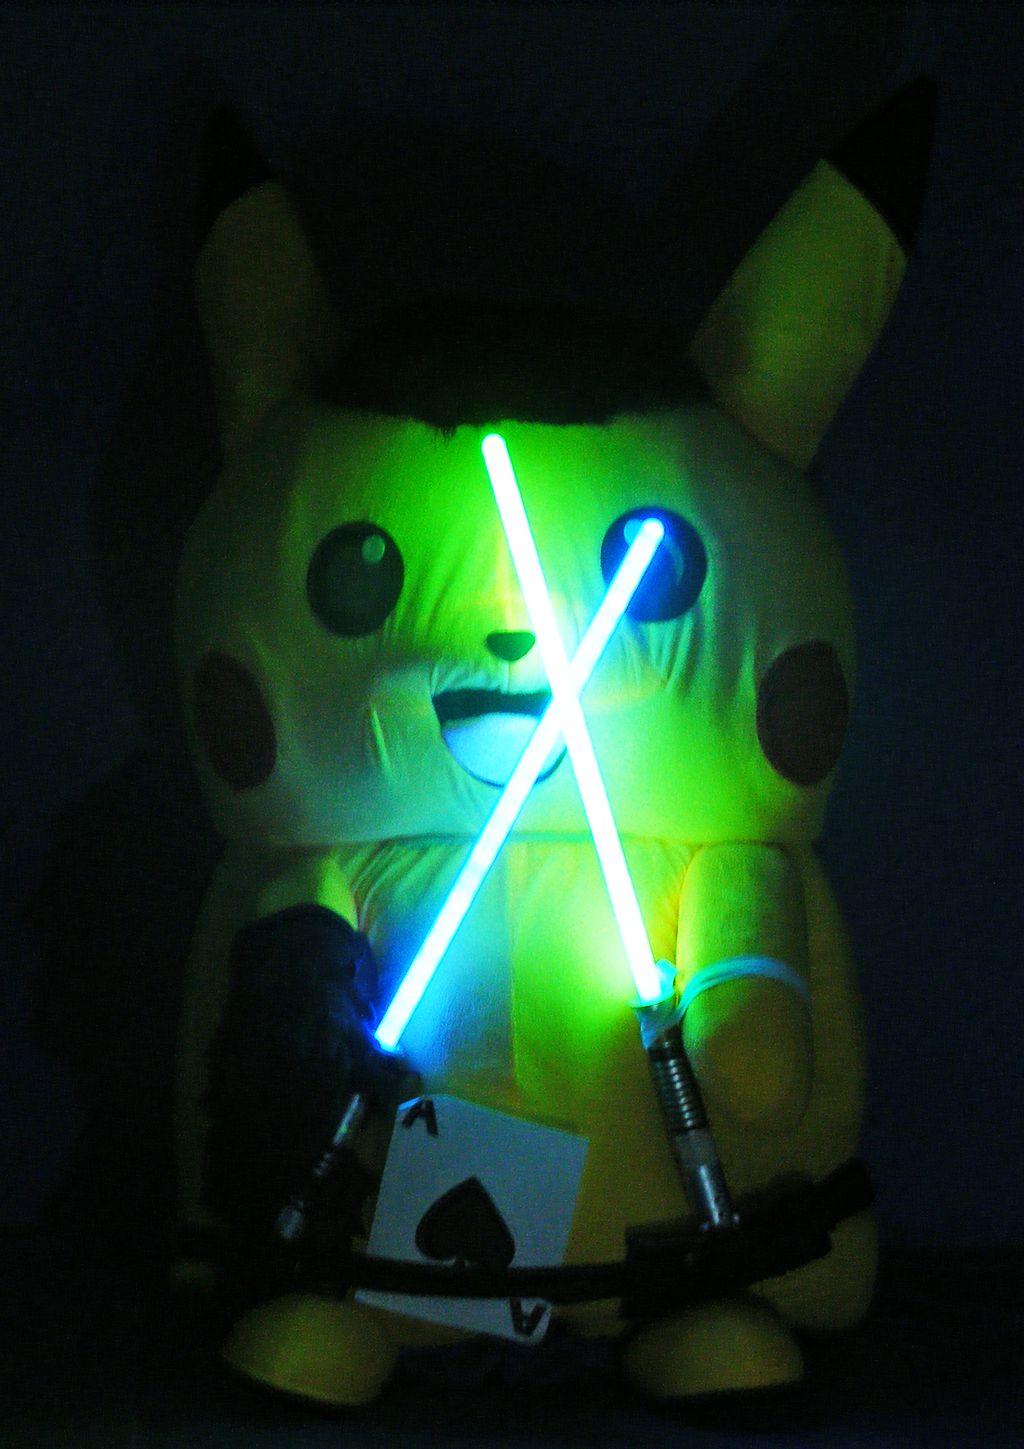 Ace Spade the Pikachu (Mascot Suit) Duel-Wielding Lightsabers in the Dark